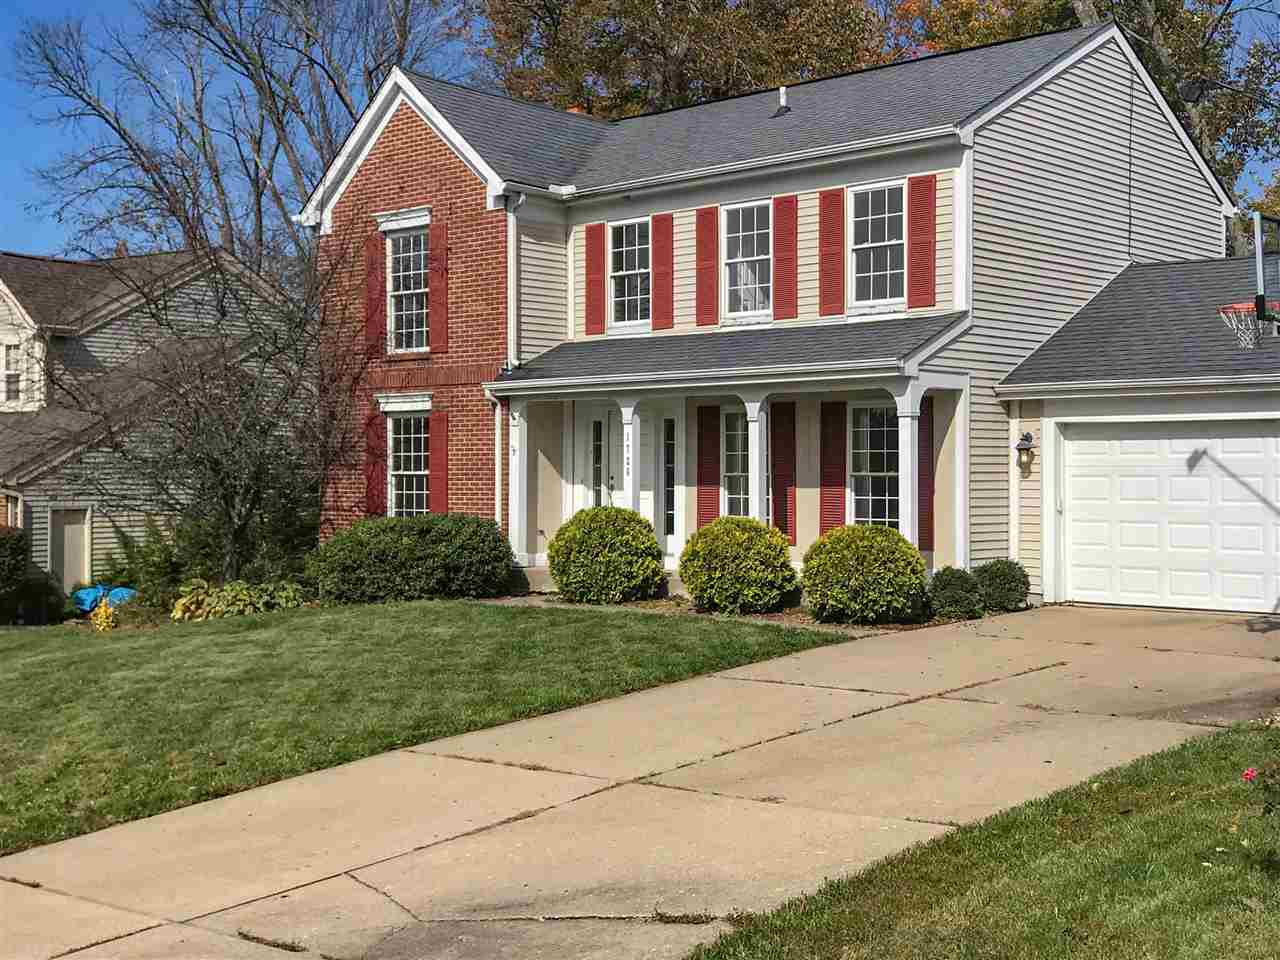 Photo 1 for 1726 Arborwood Florence, KY 41042